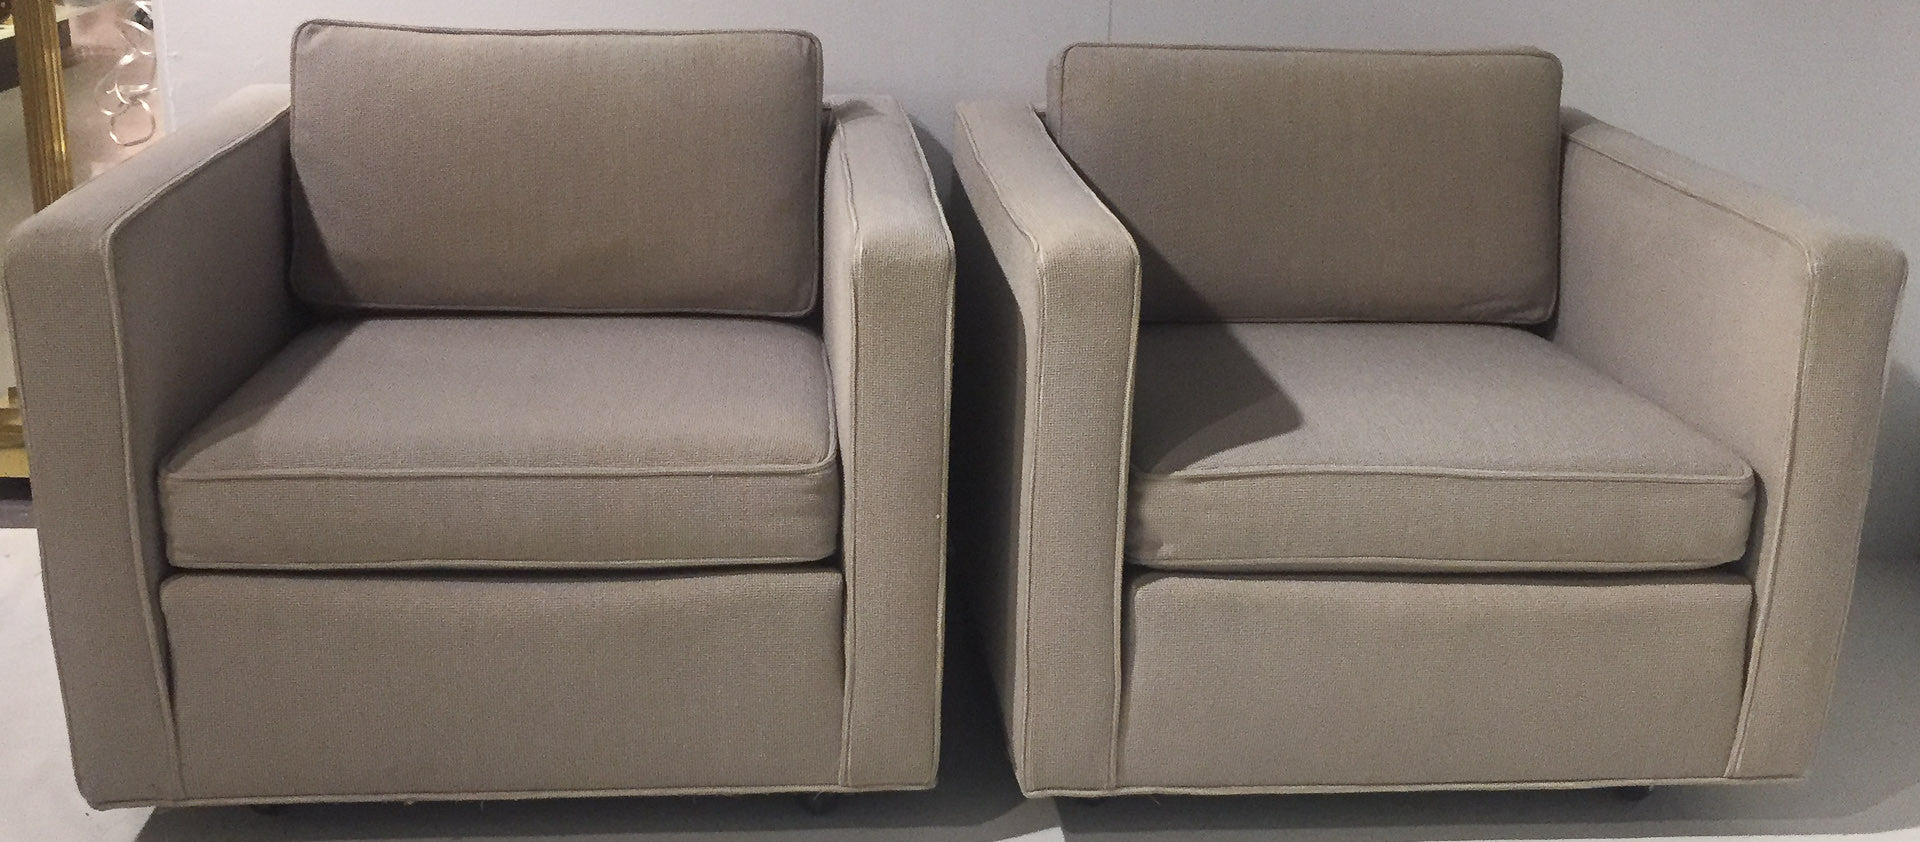 Pair, Mid Century Milo Baughman Style Upholstered Cube Chairs